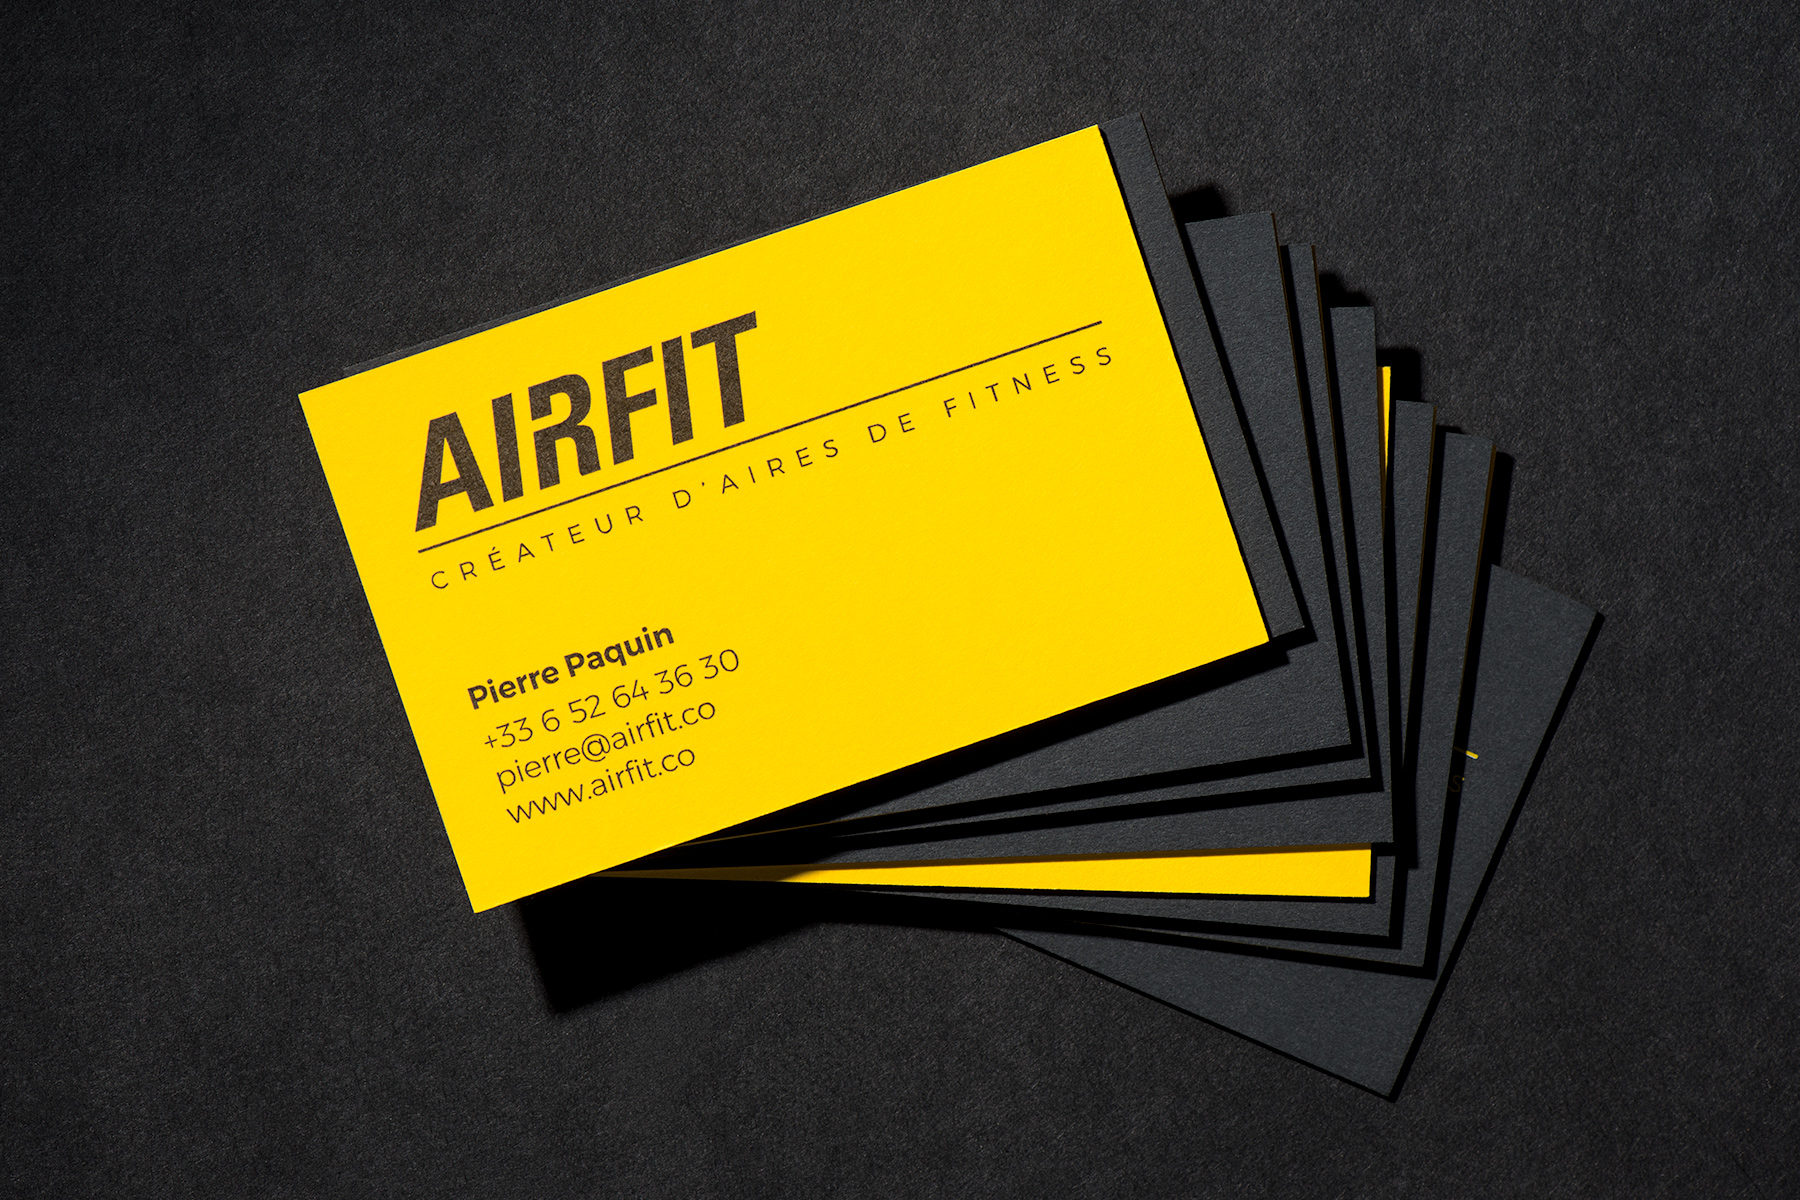 BarinovDesign_AirFit_BrandIdentity_BusinessCards_2.jpg